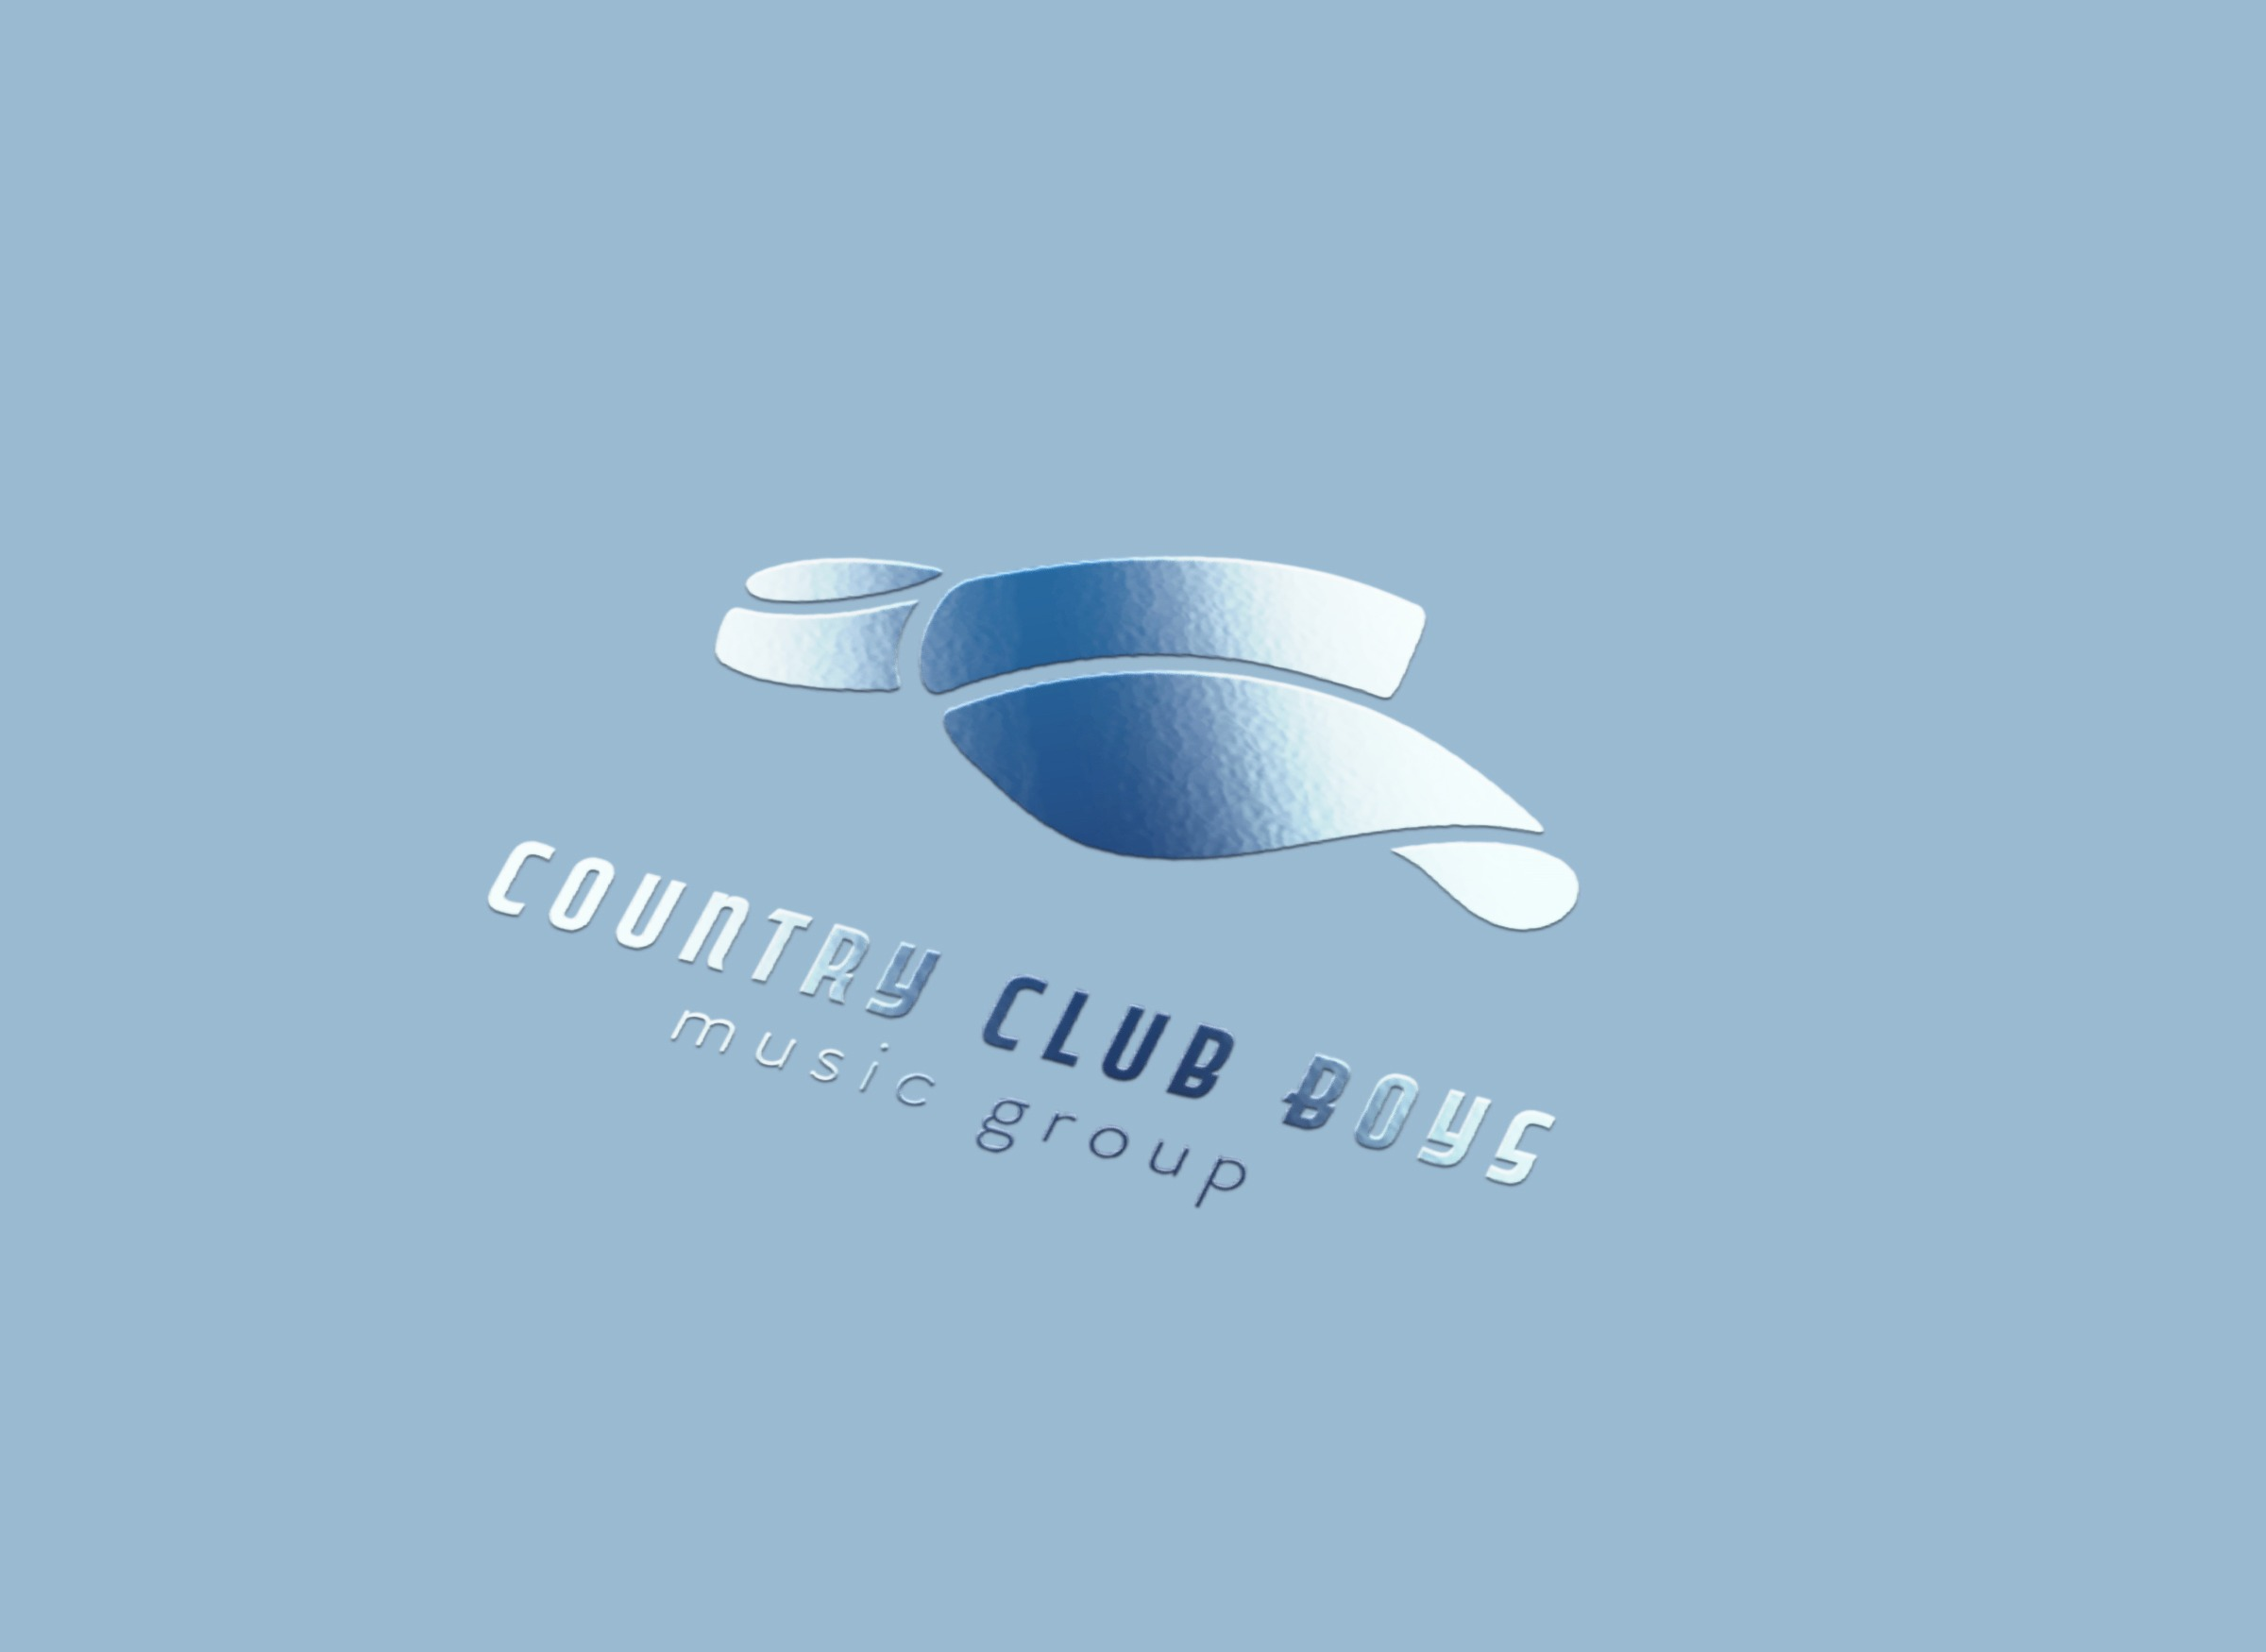 CountryClubBoys_mockup_edited